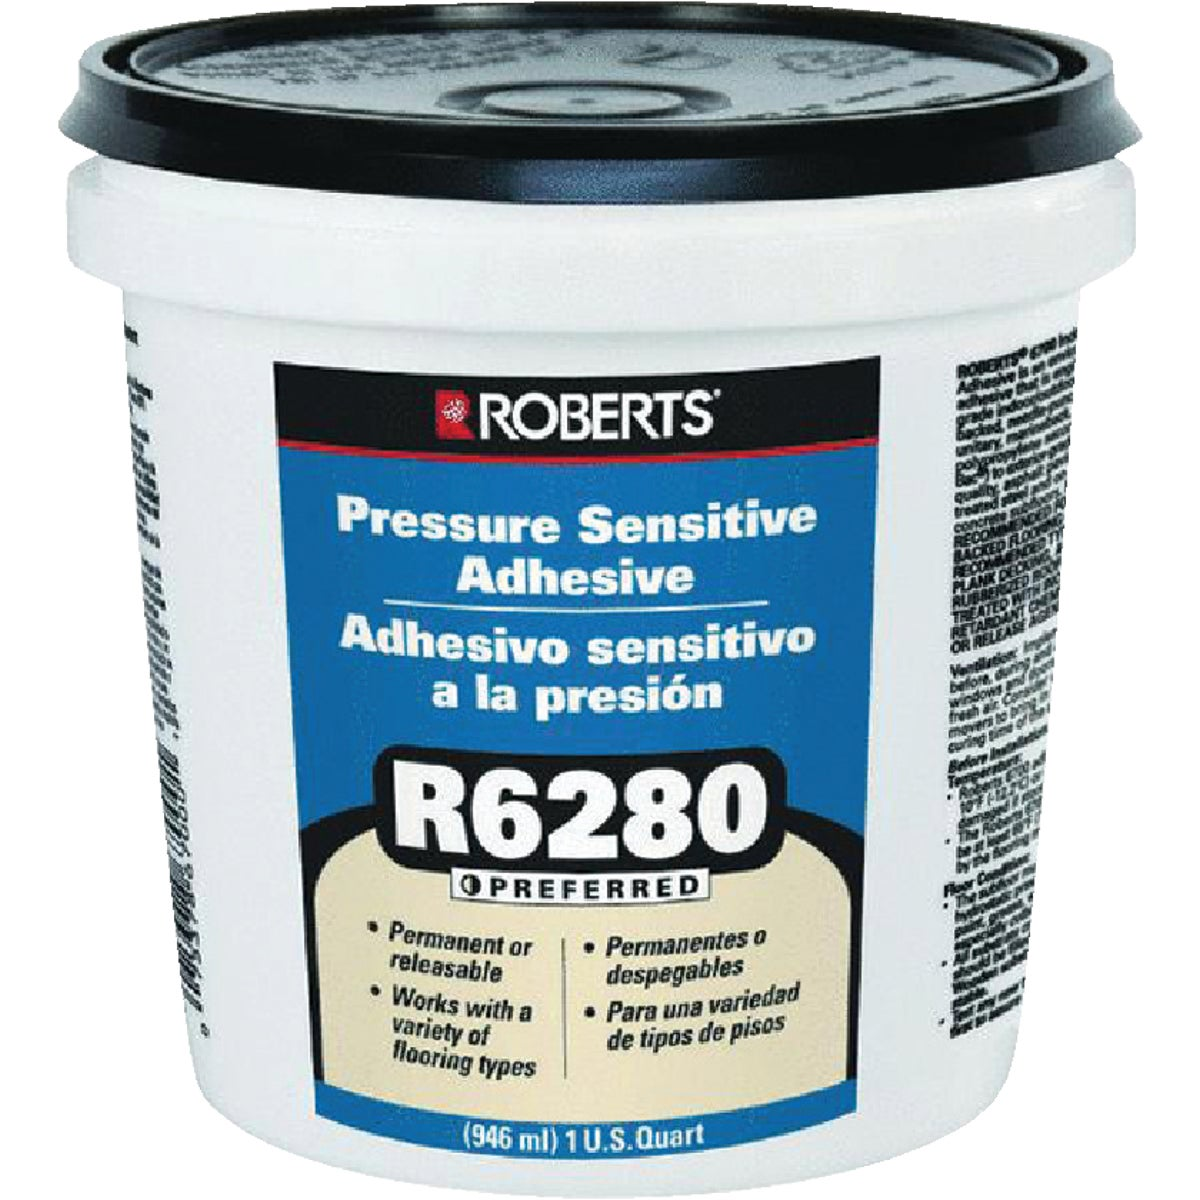 Pressure Sensitive Multi-Purpose Floor Adhesive